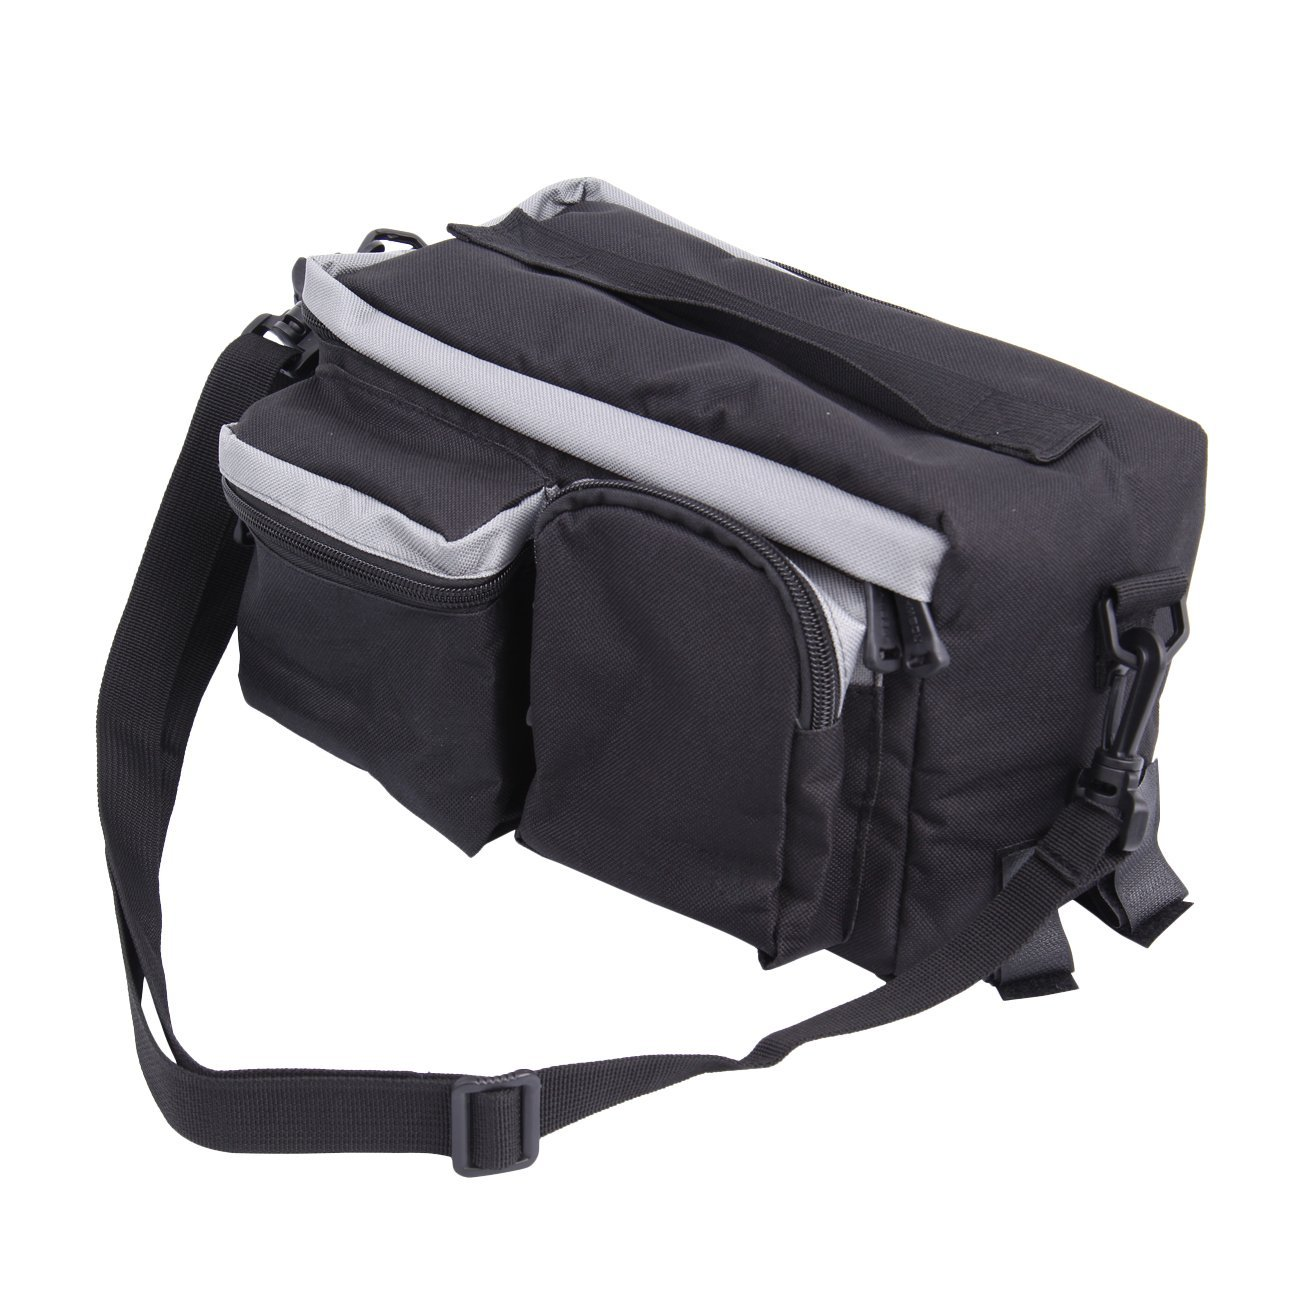 PanelTech Bicycle Cycling Sport Rear Rack Seat Trunk Bag Bike Mountain Handbag Storage Expanding Carry Strap Portable Shoulder Saddle Bag with Water Holder